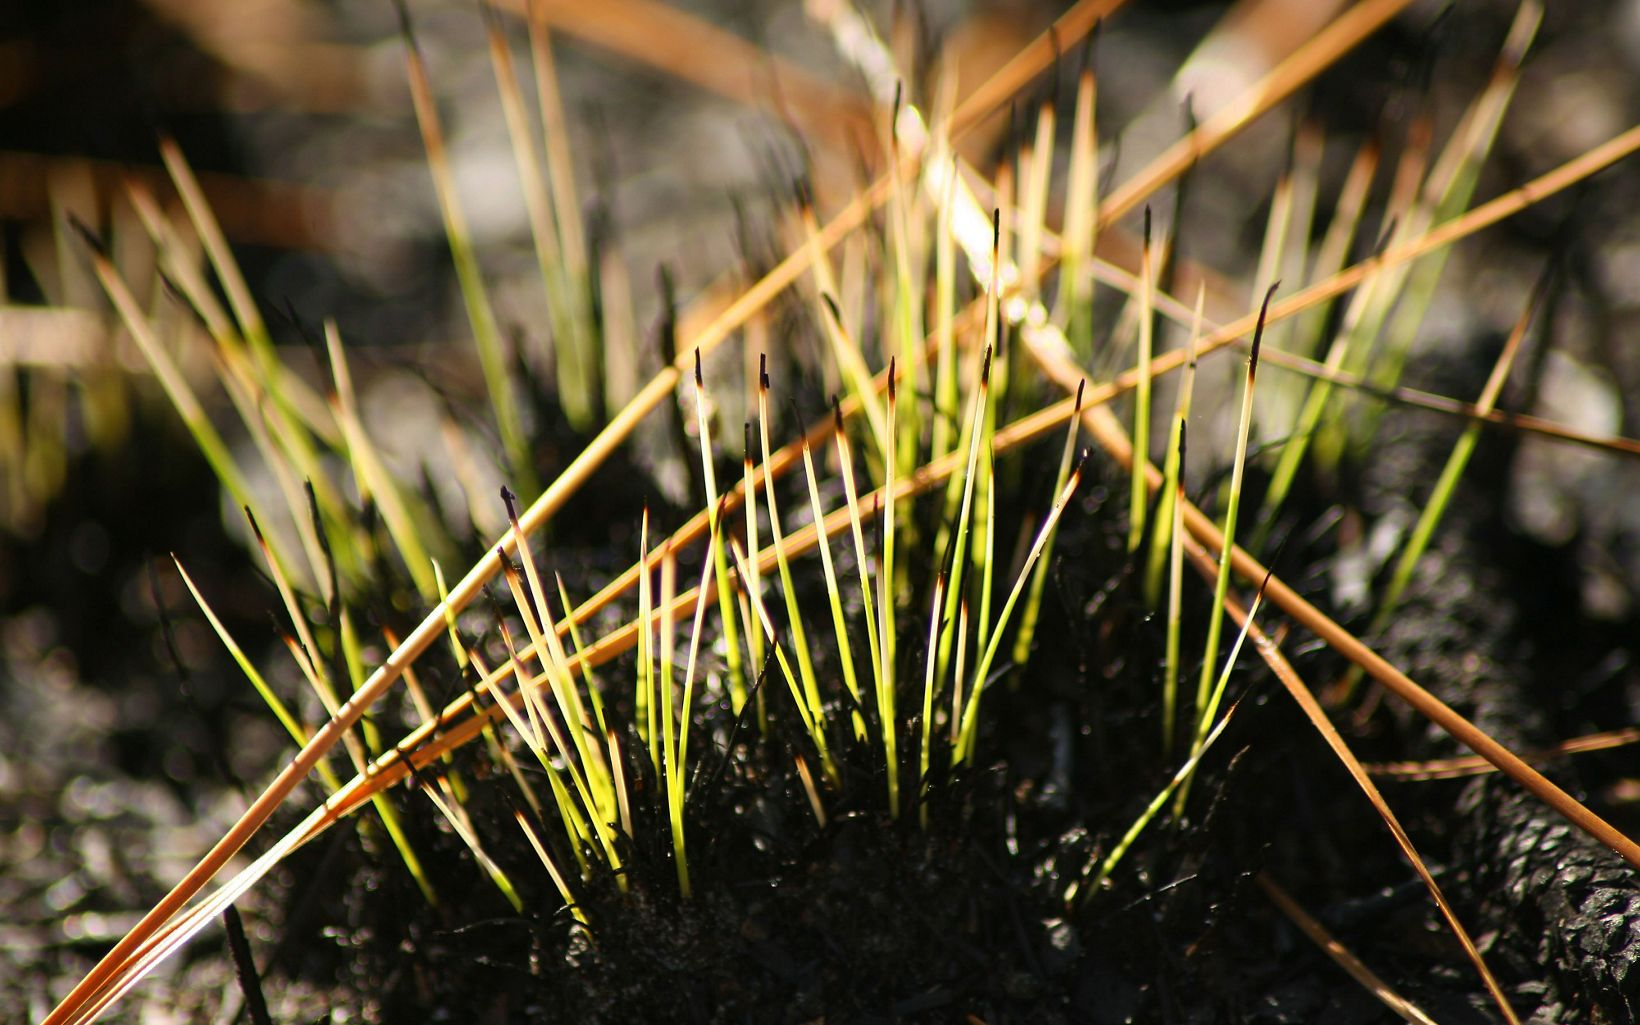 New Growth of small plants emerge after a prescribed fire.